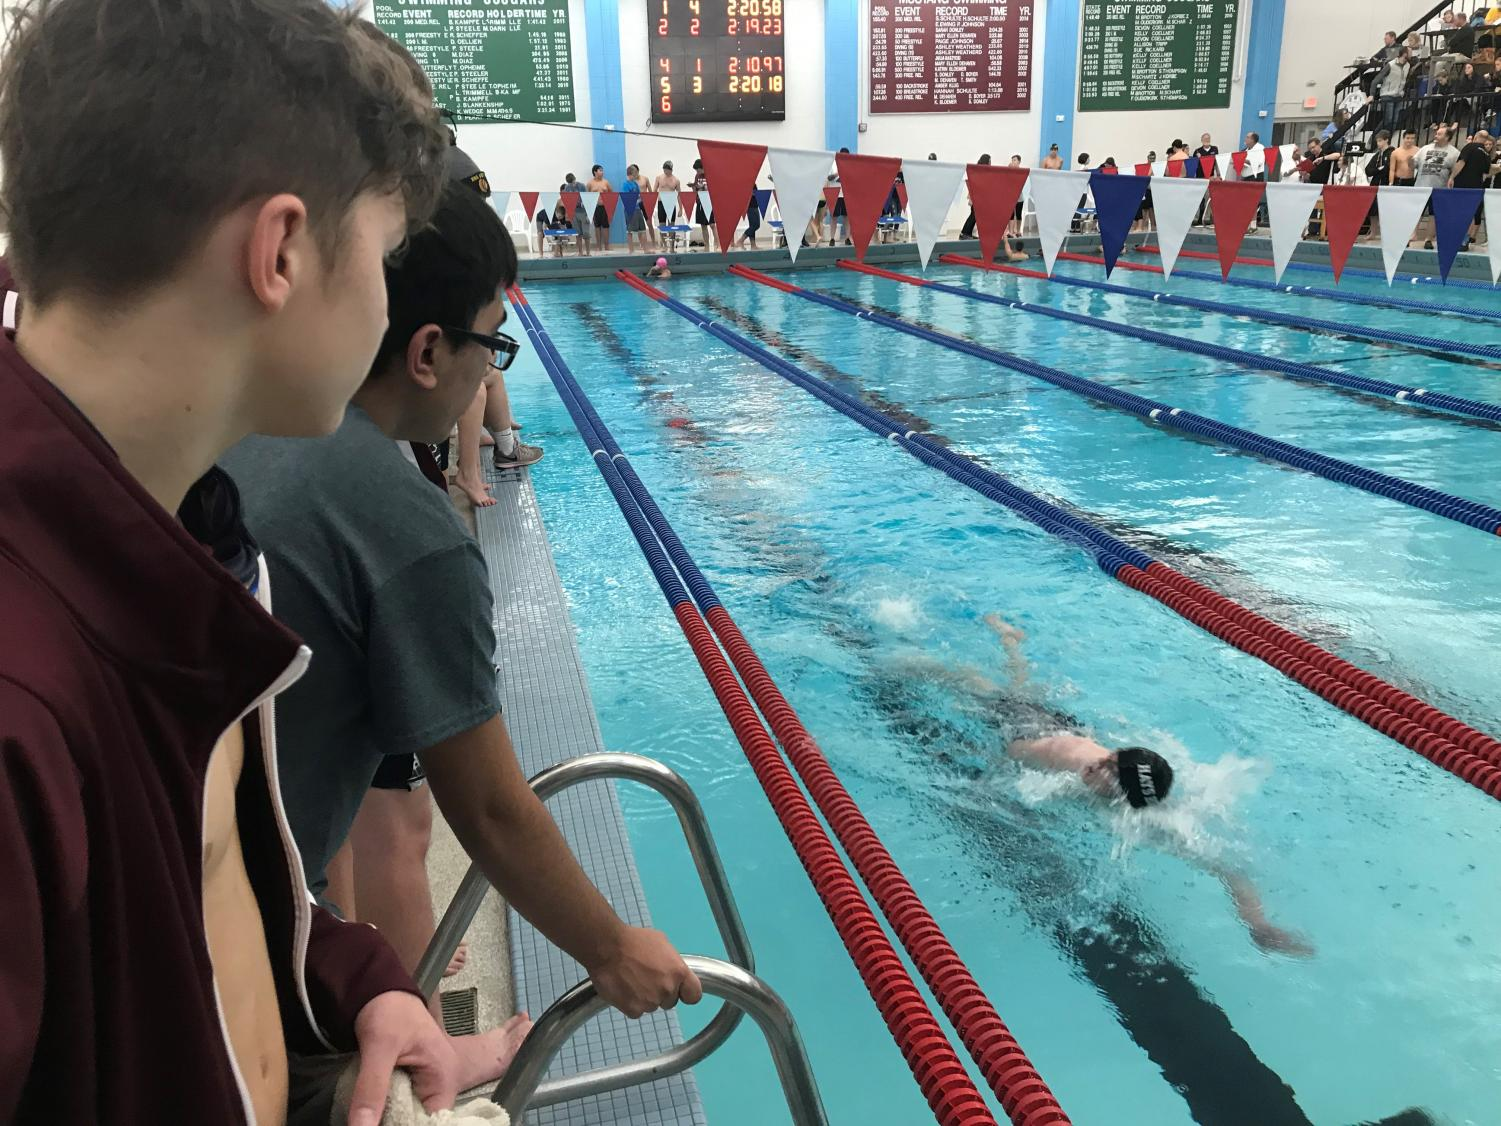 Hays swimmers watch as senior Brett Bowles completes his last 50 yards in the 200 Individual Medley.